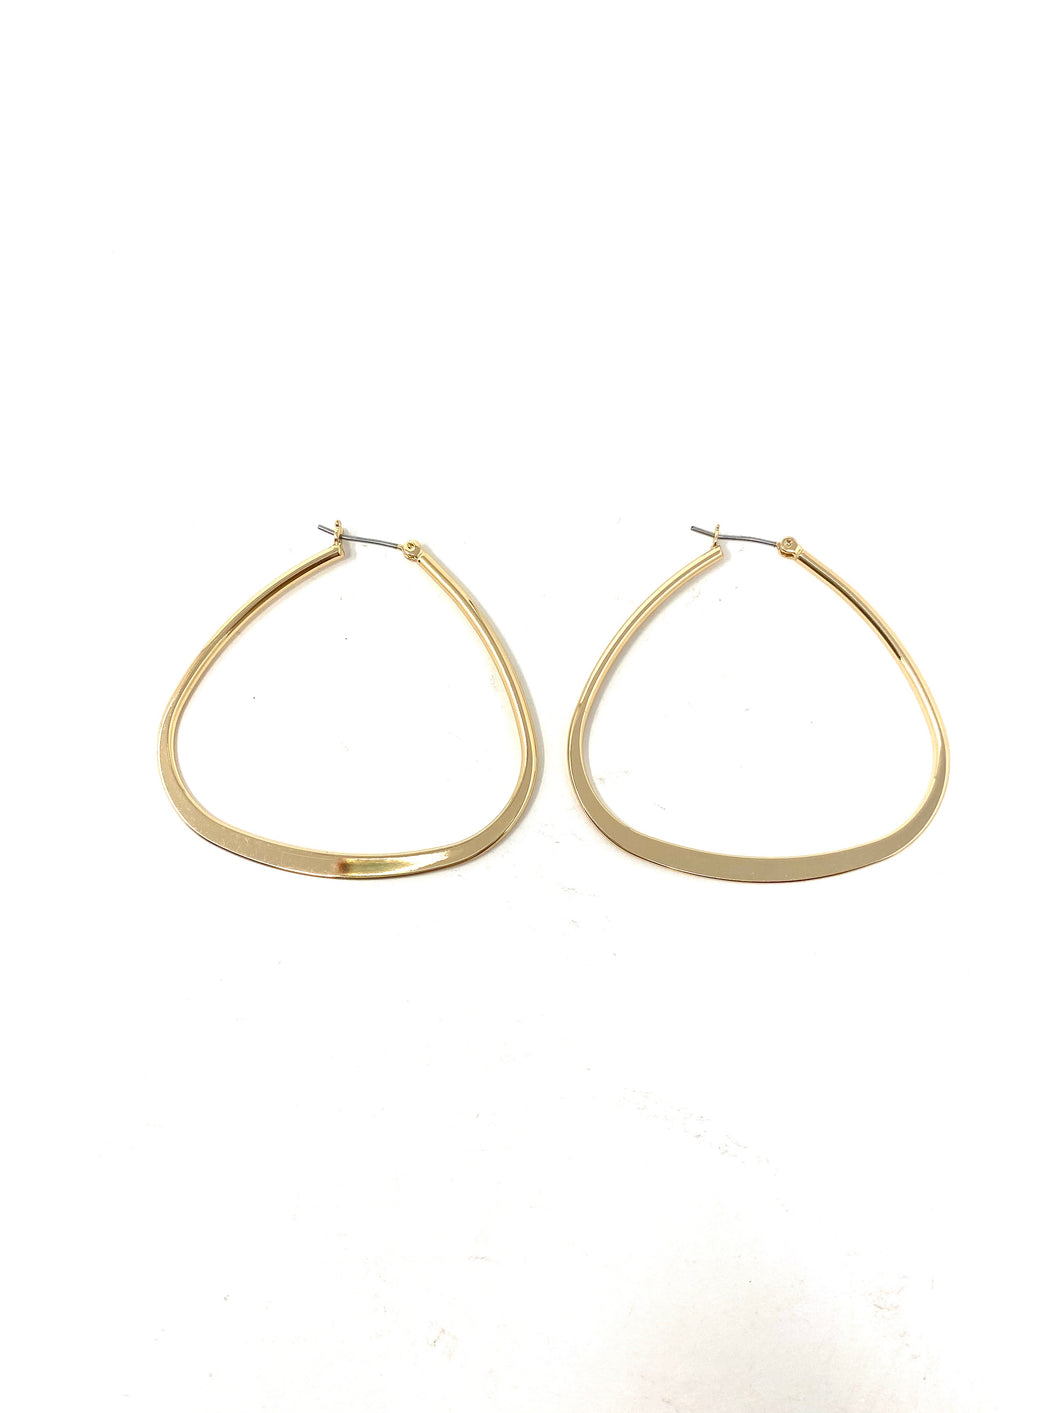 Modern Geometric Gold Hoop Earrings